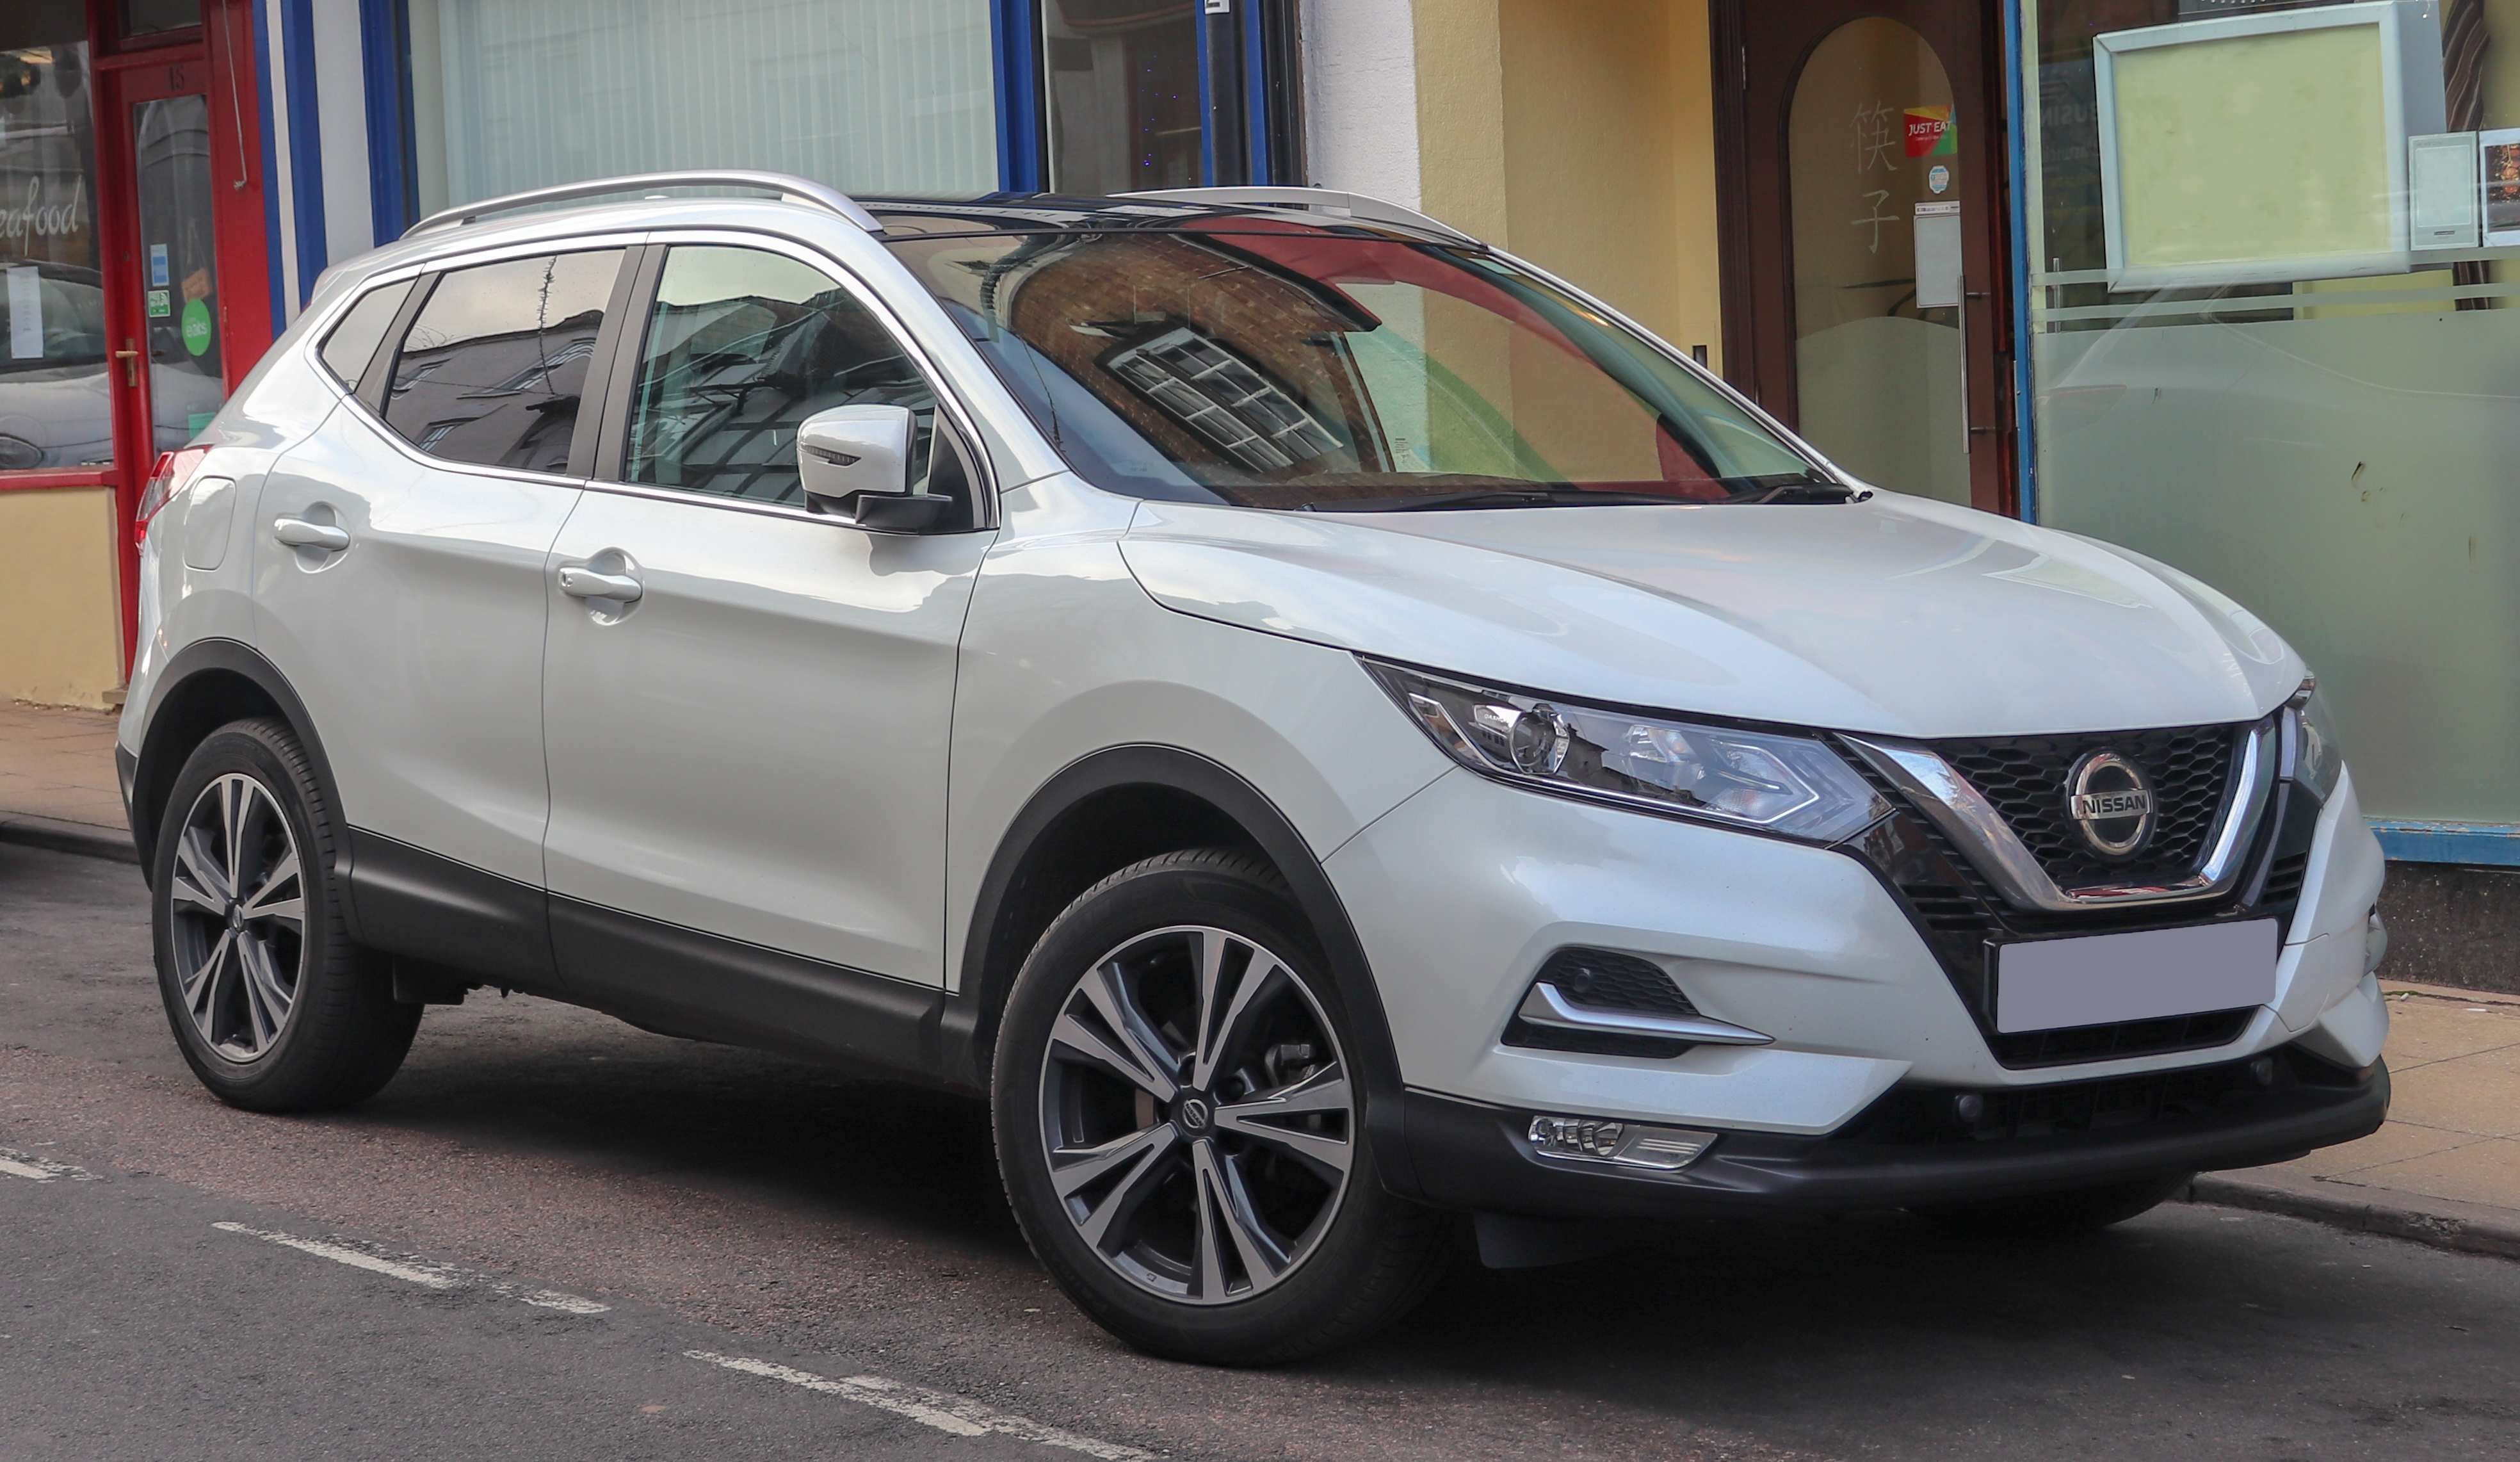 72 Concept of Nissan Qashqai 2020 Release Date Australia Ratings for Nissan Qashqai 2020 Release Date Australia